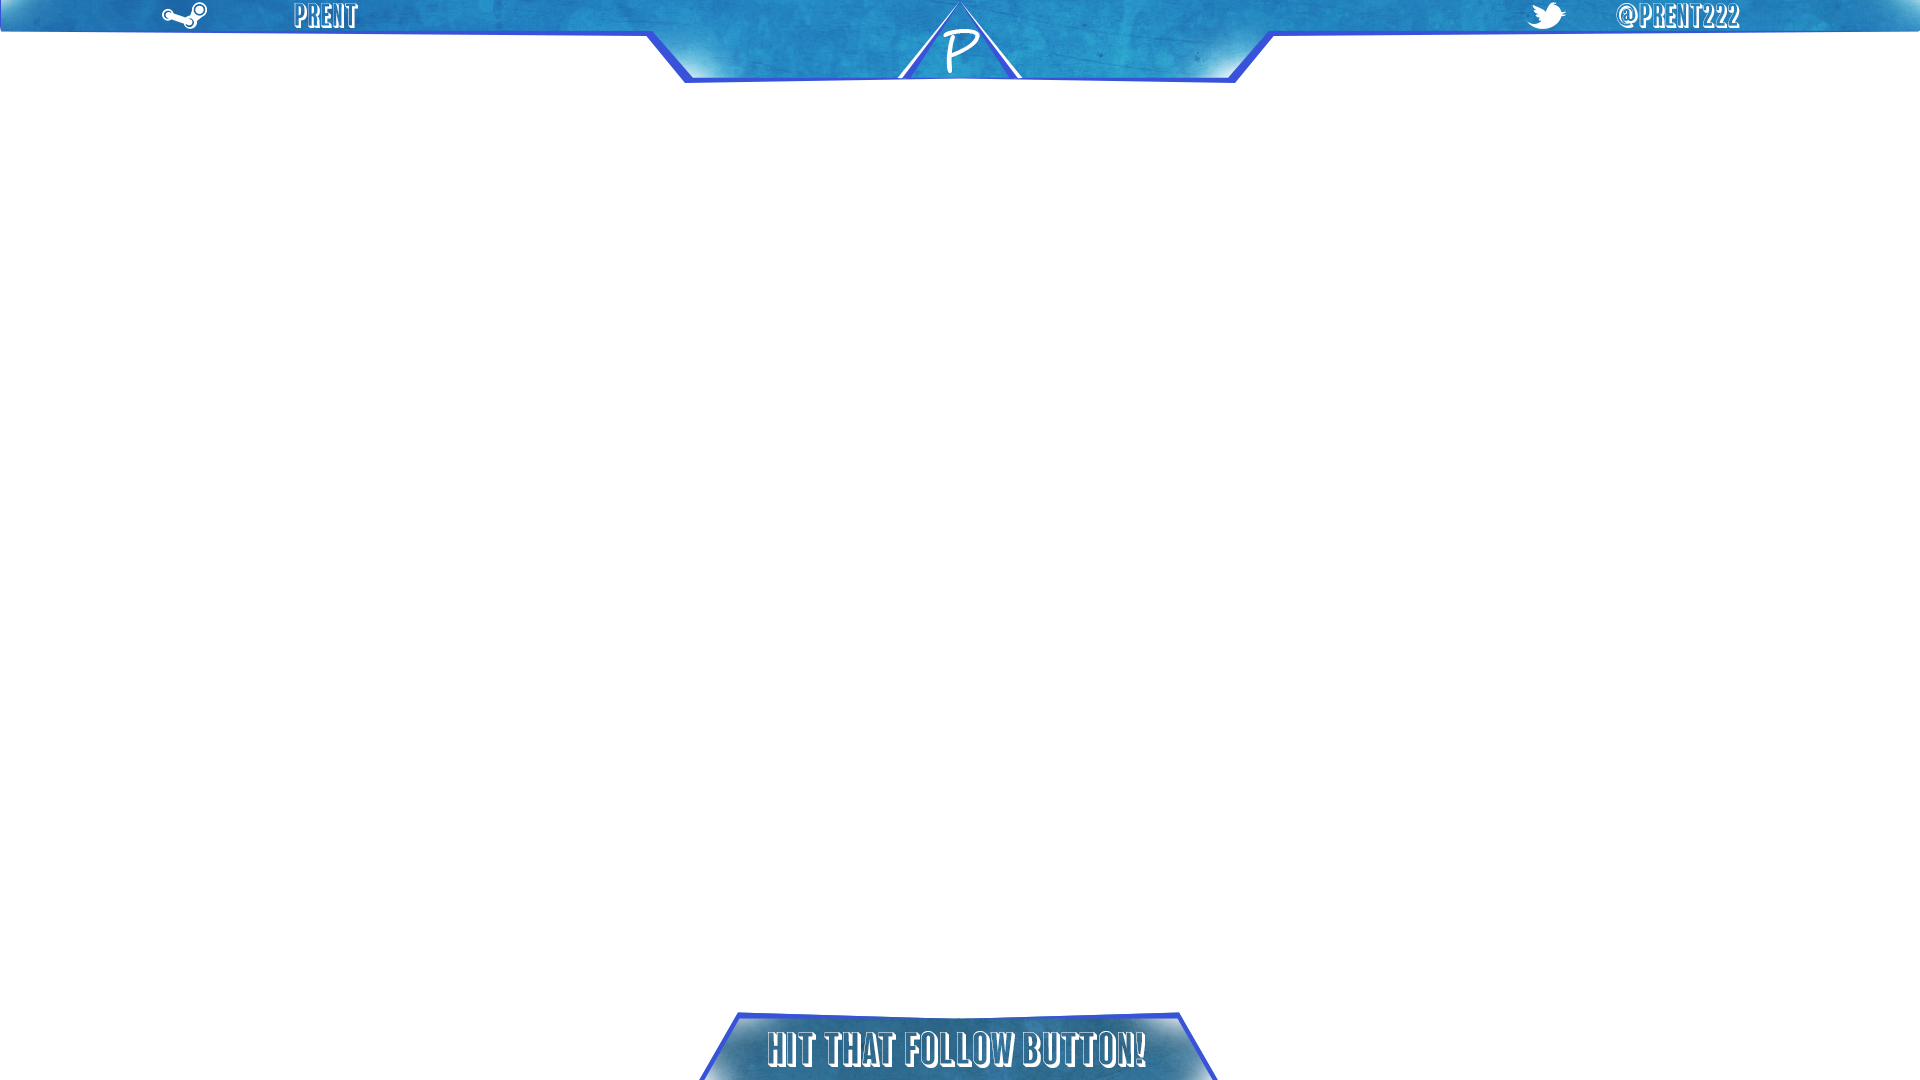 Youtube overlay png. Sean prentice twitch